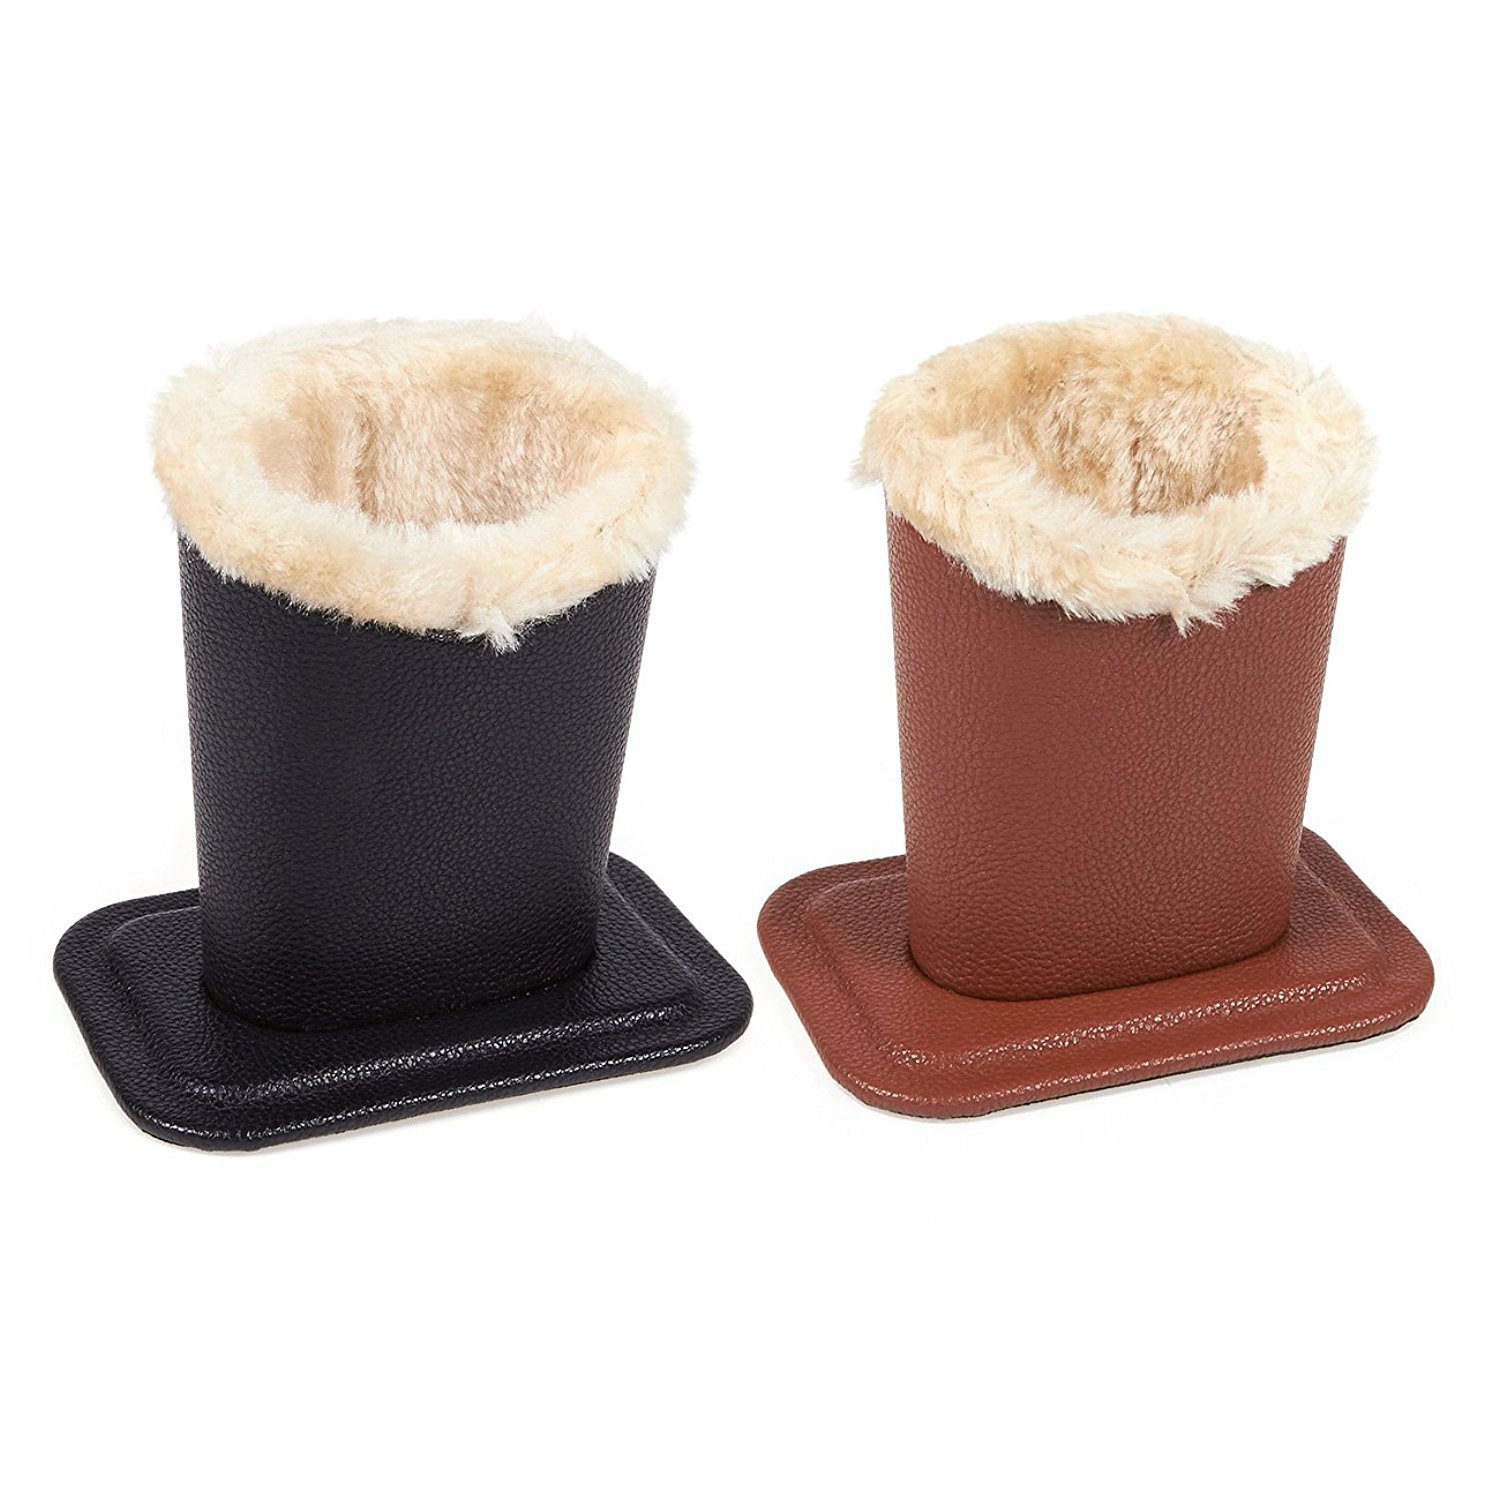 Juvale Pack of 2 Eyeglass Holders - Eyeglass Stands with Soft Plush Lining - Eyeglass Holder Stands, 4.5 x 4.7 x 3.2 Inches, Black, Brown